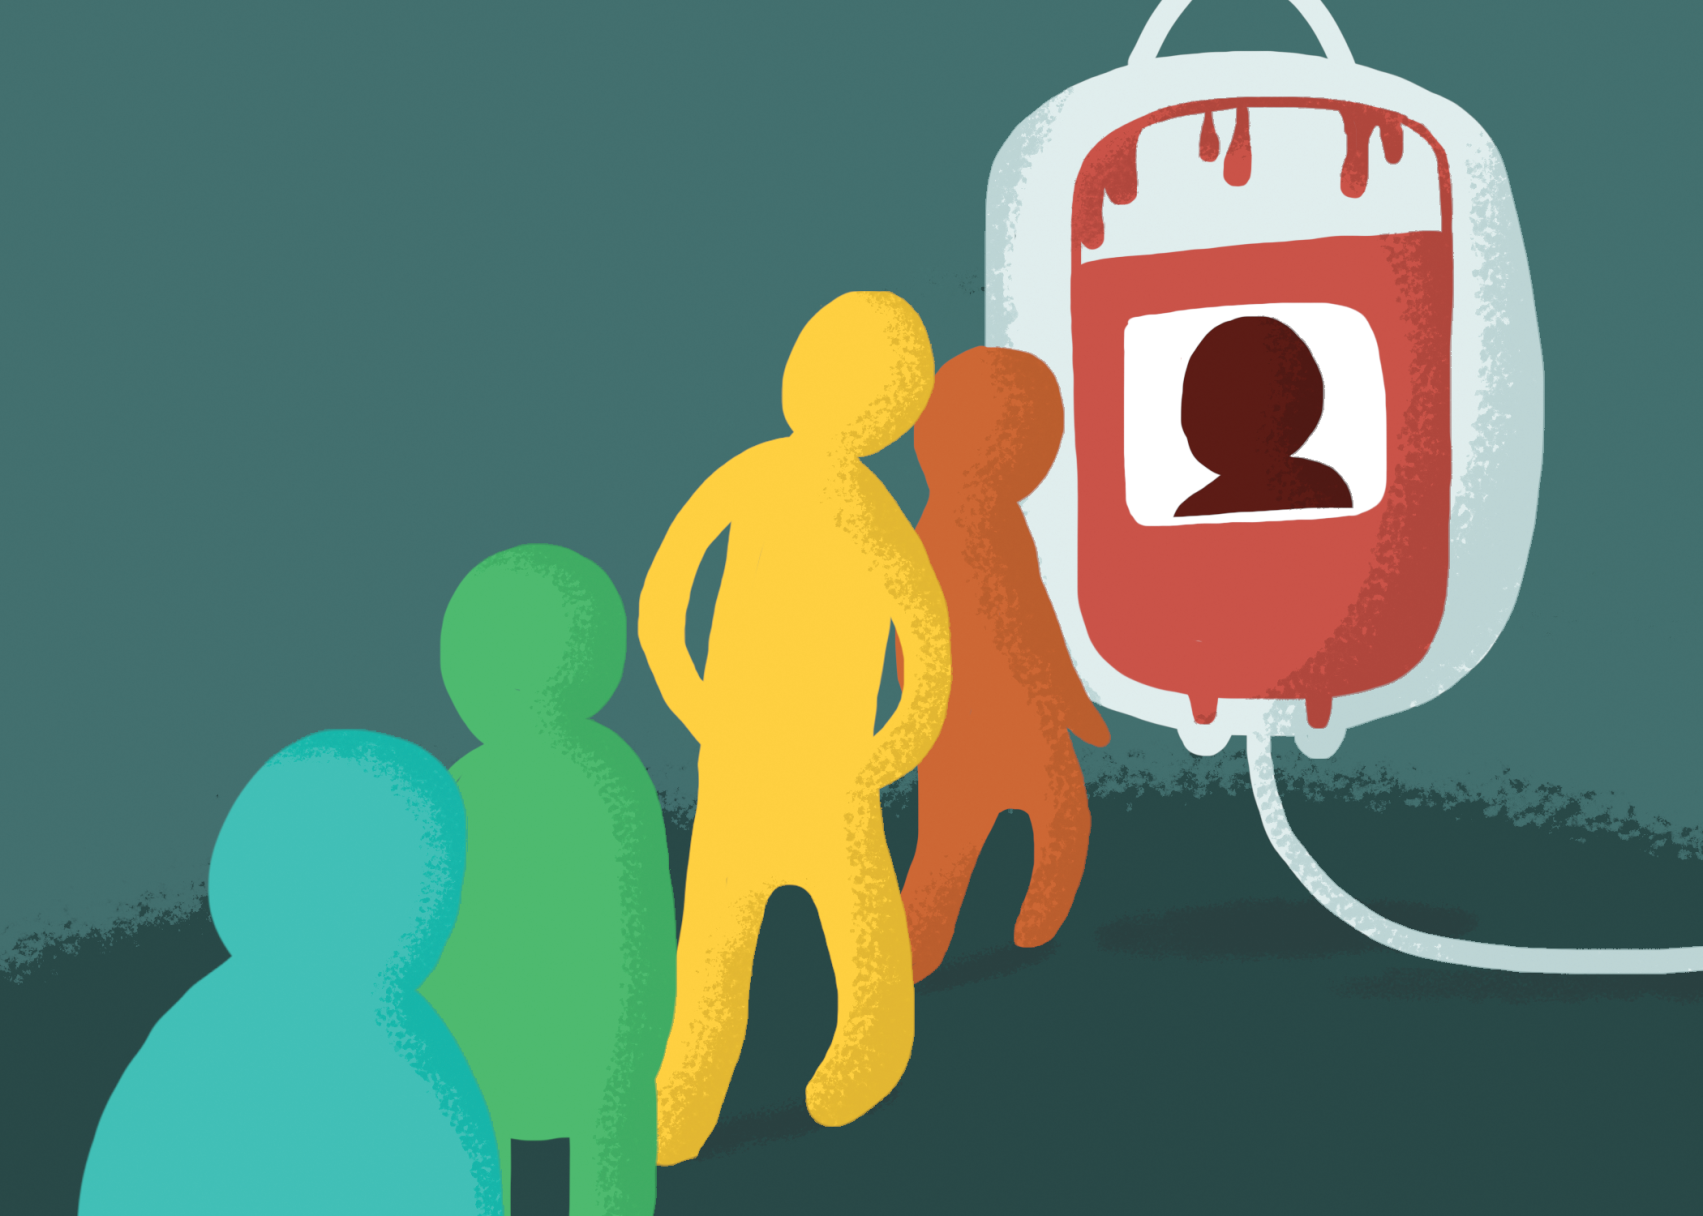 Opinion: The regulations prohibiting blood donations from LGBTQ people are regressive